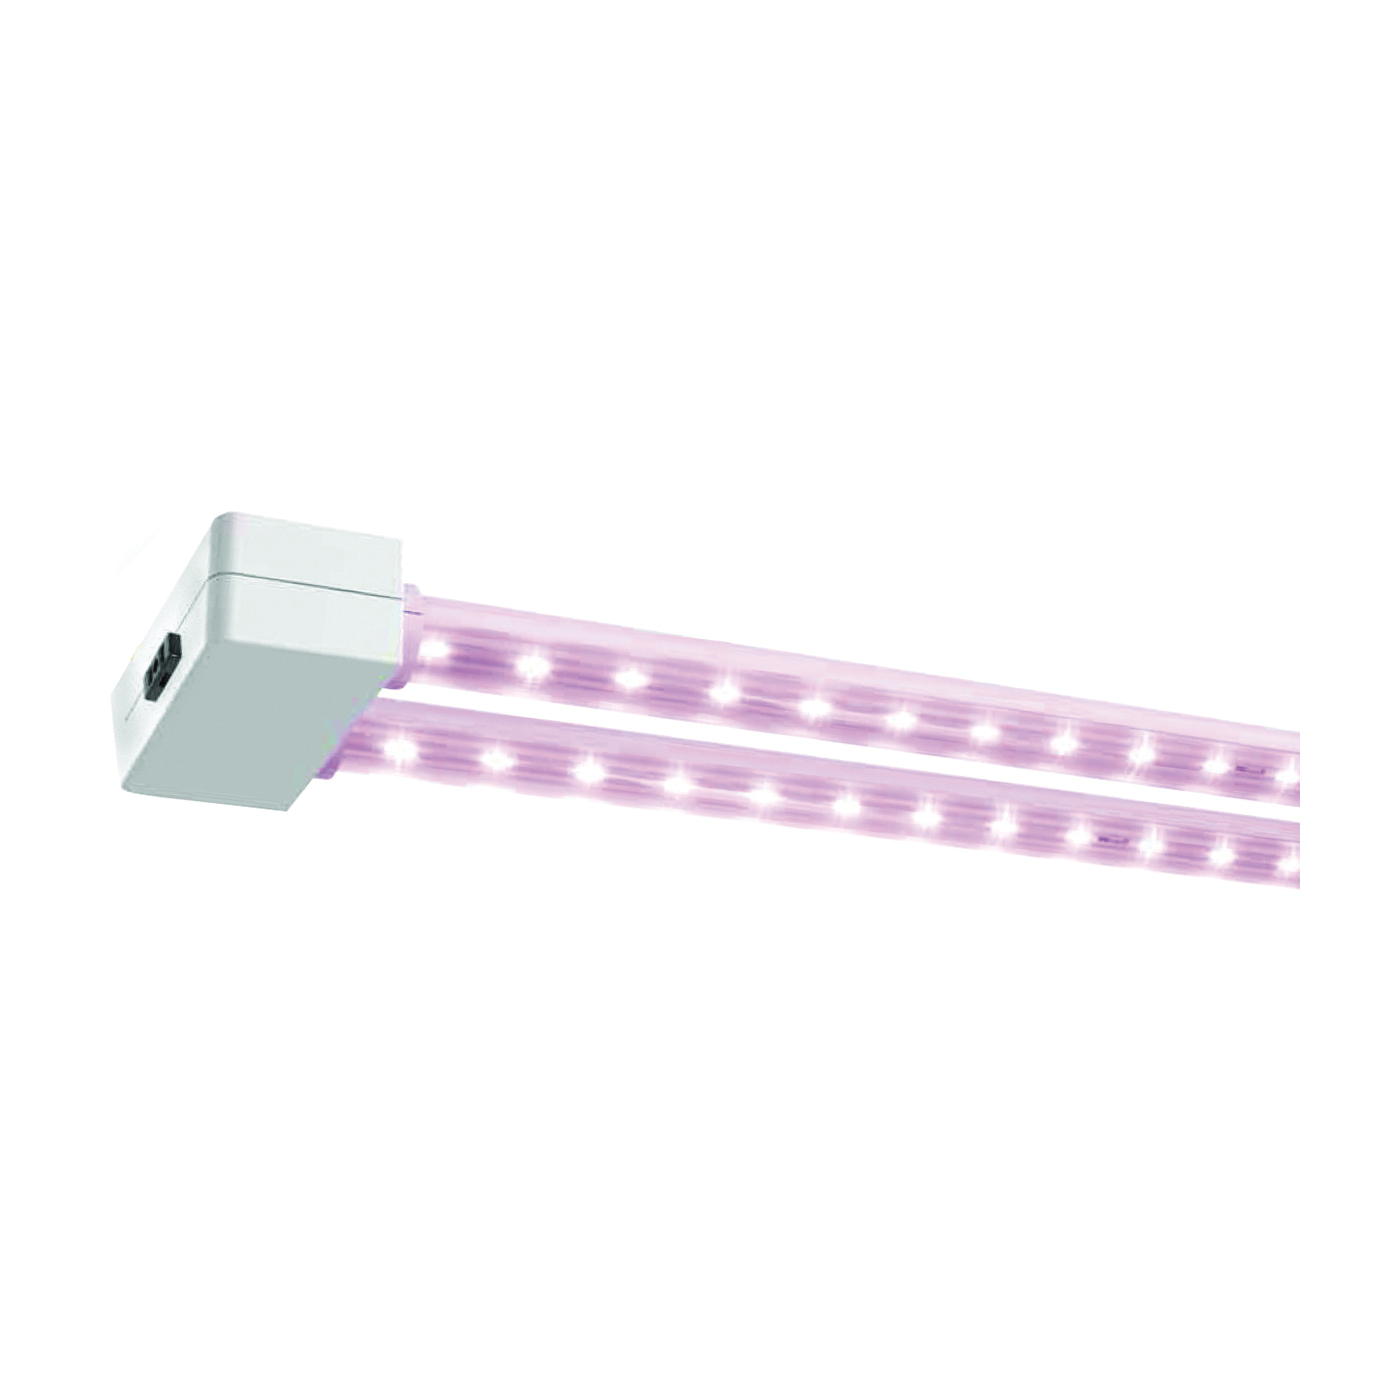 Picture of Feit Electric 74303 LED Grow Light, 120 V, 2 -Lamp, LED Lamp, 1100 K Color Temp, Red